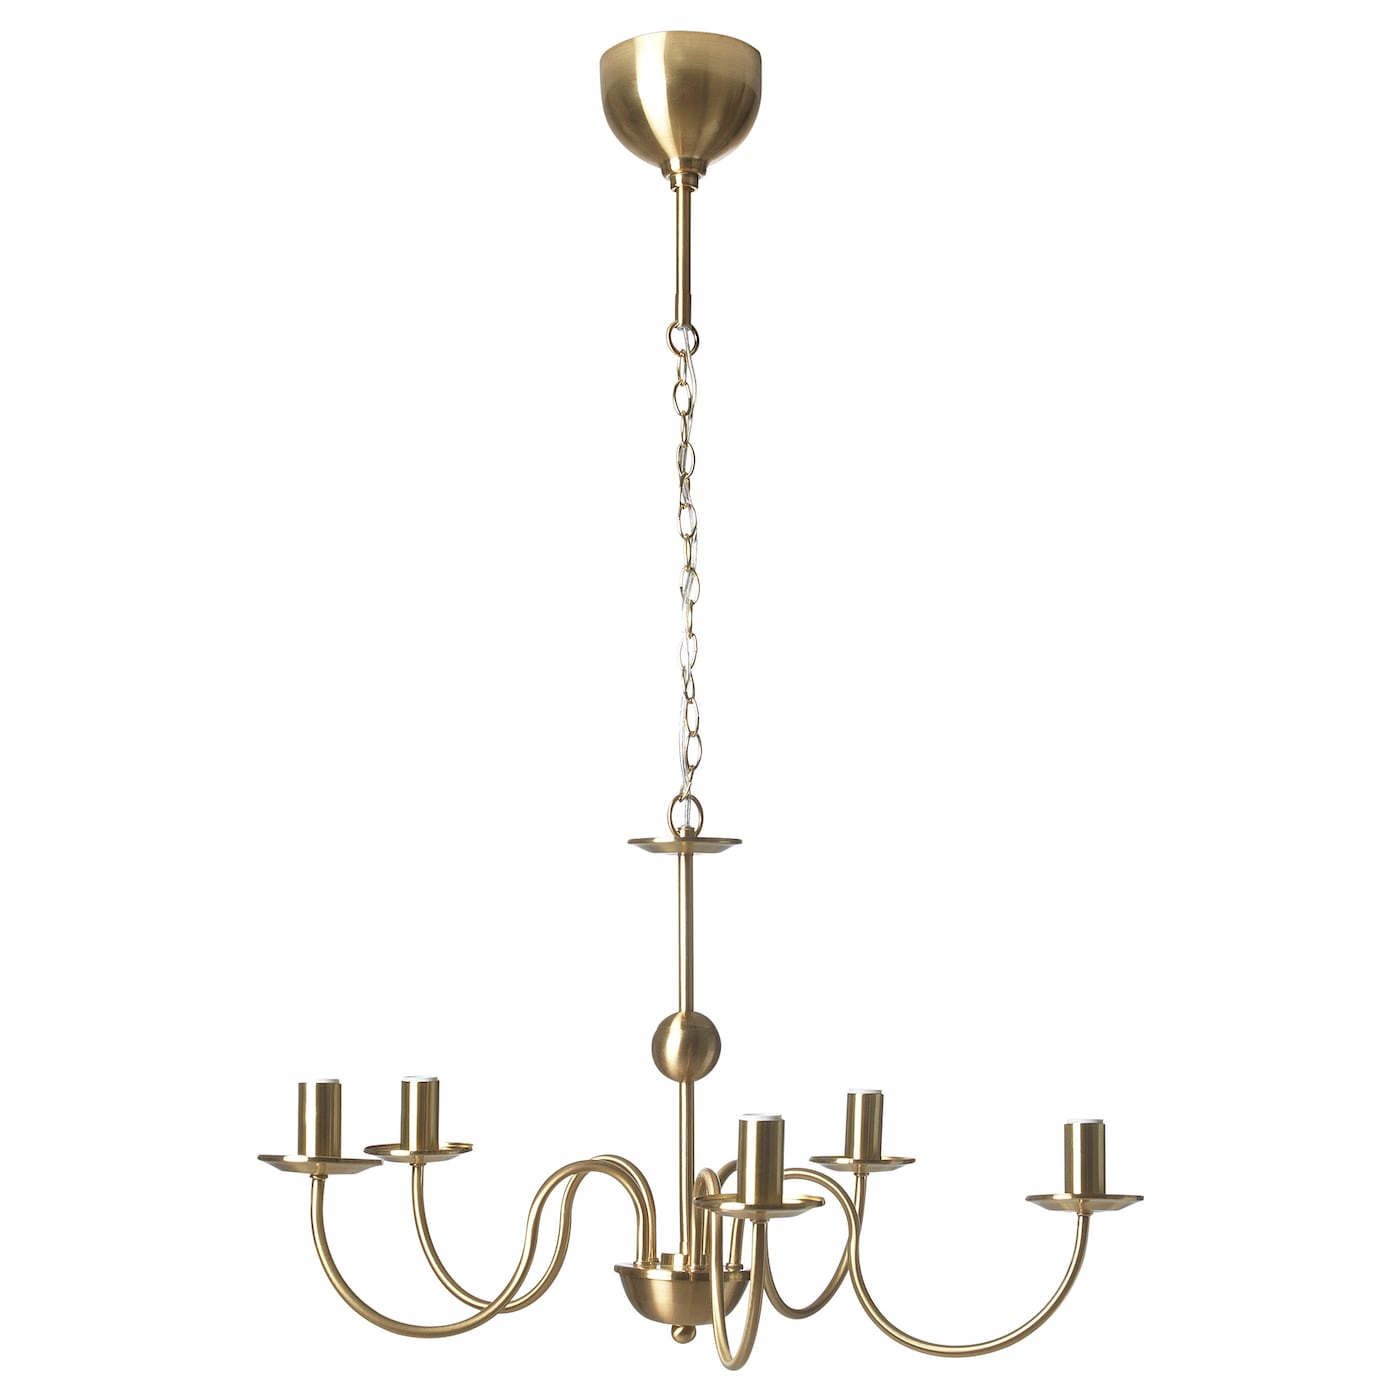 IKEA DOTORP chandelier, 5-armed Easy to adjust the height with the hooks.